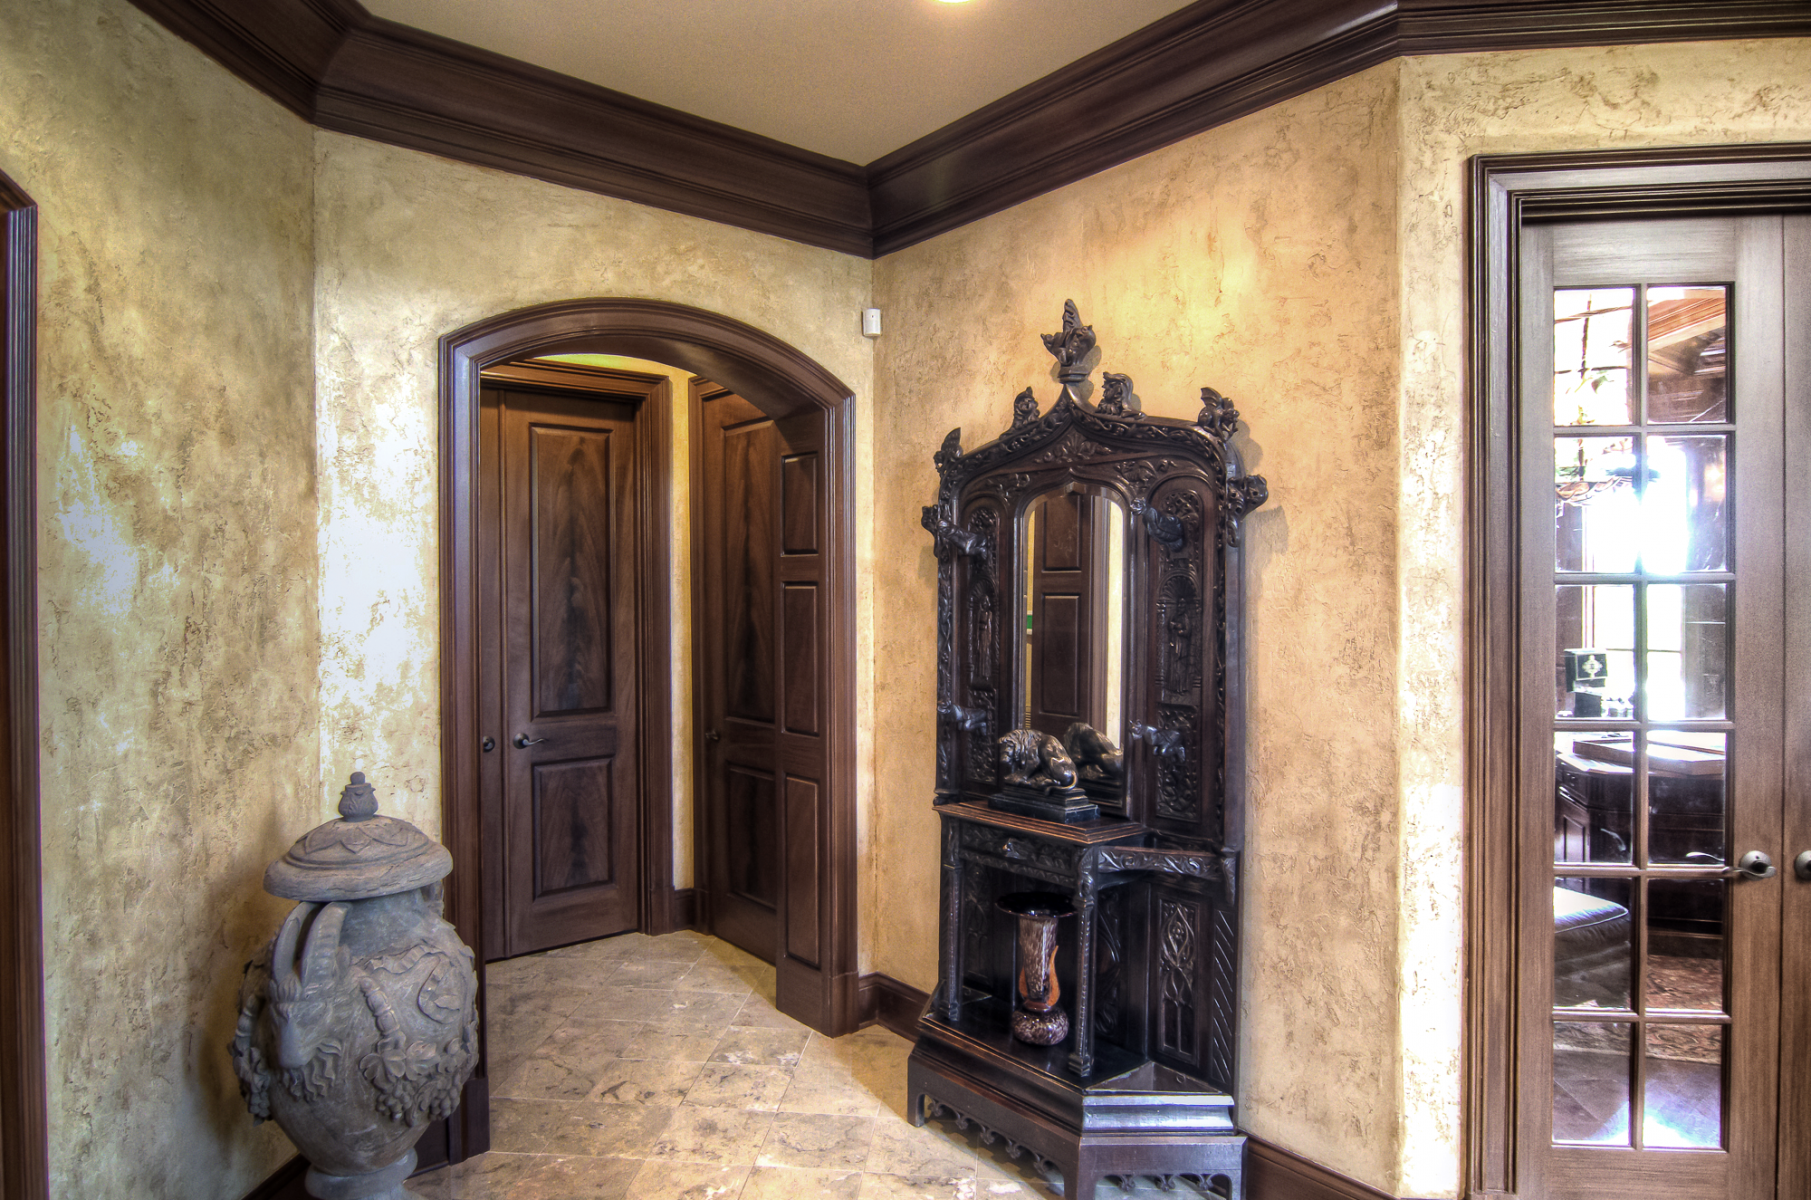 European plaster walls with wood glazed trim and faux mahogany master bedroom entrance doors.